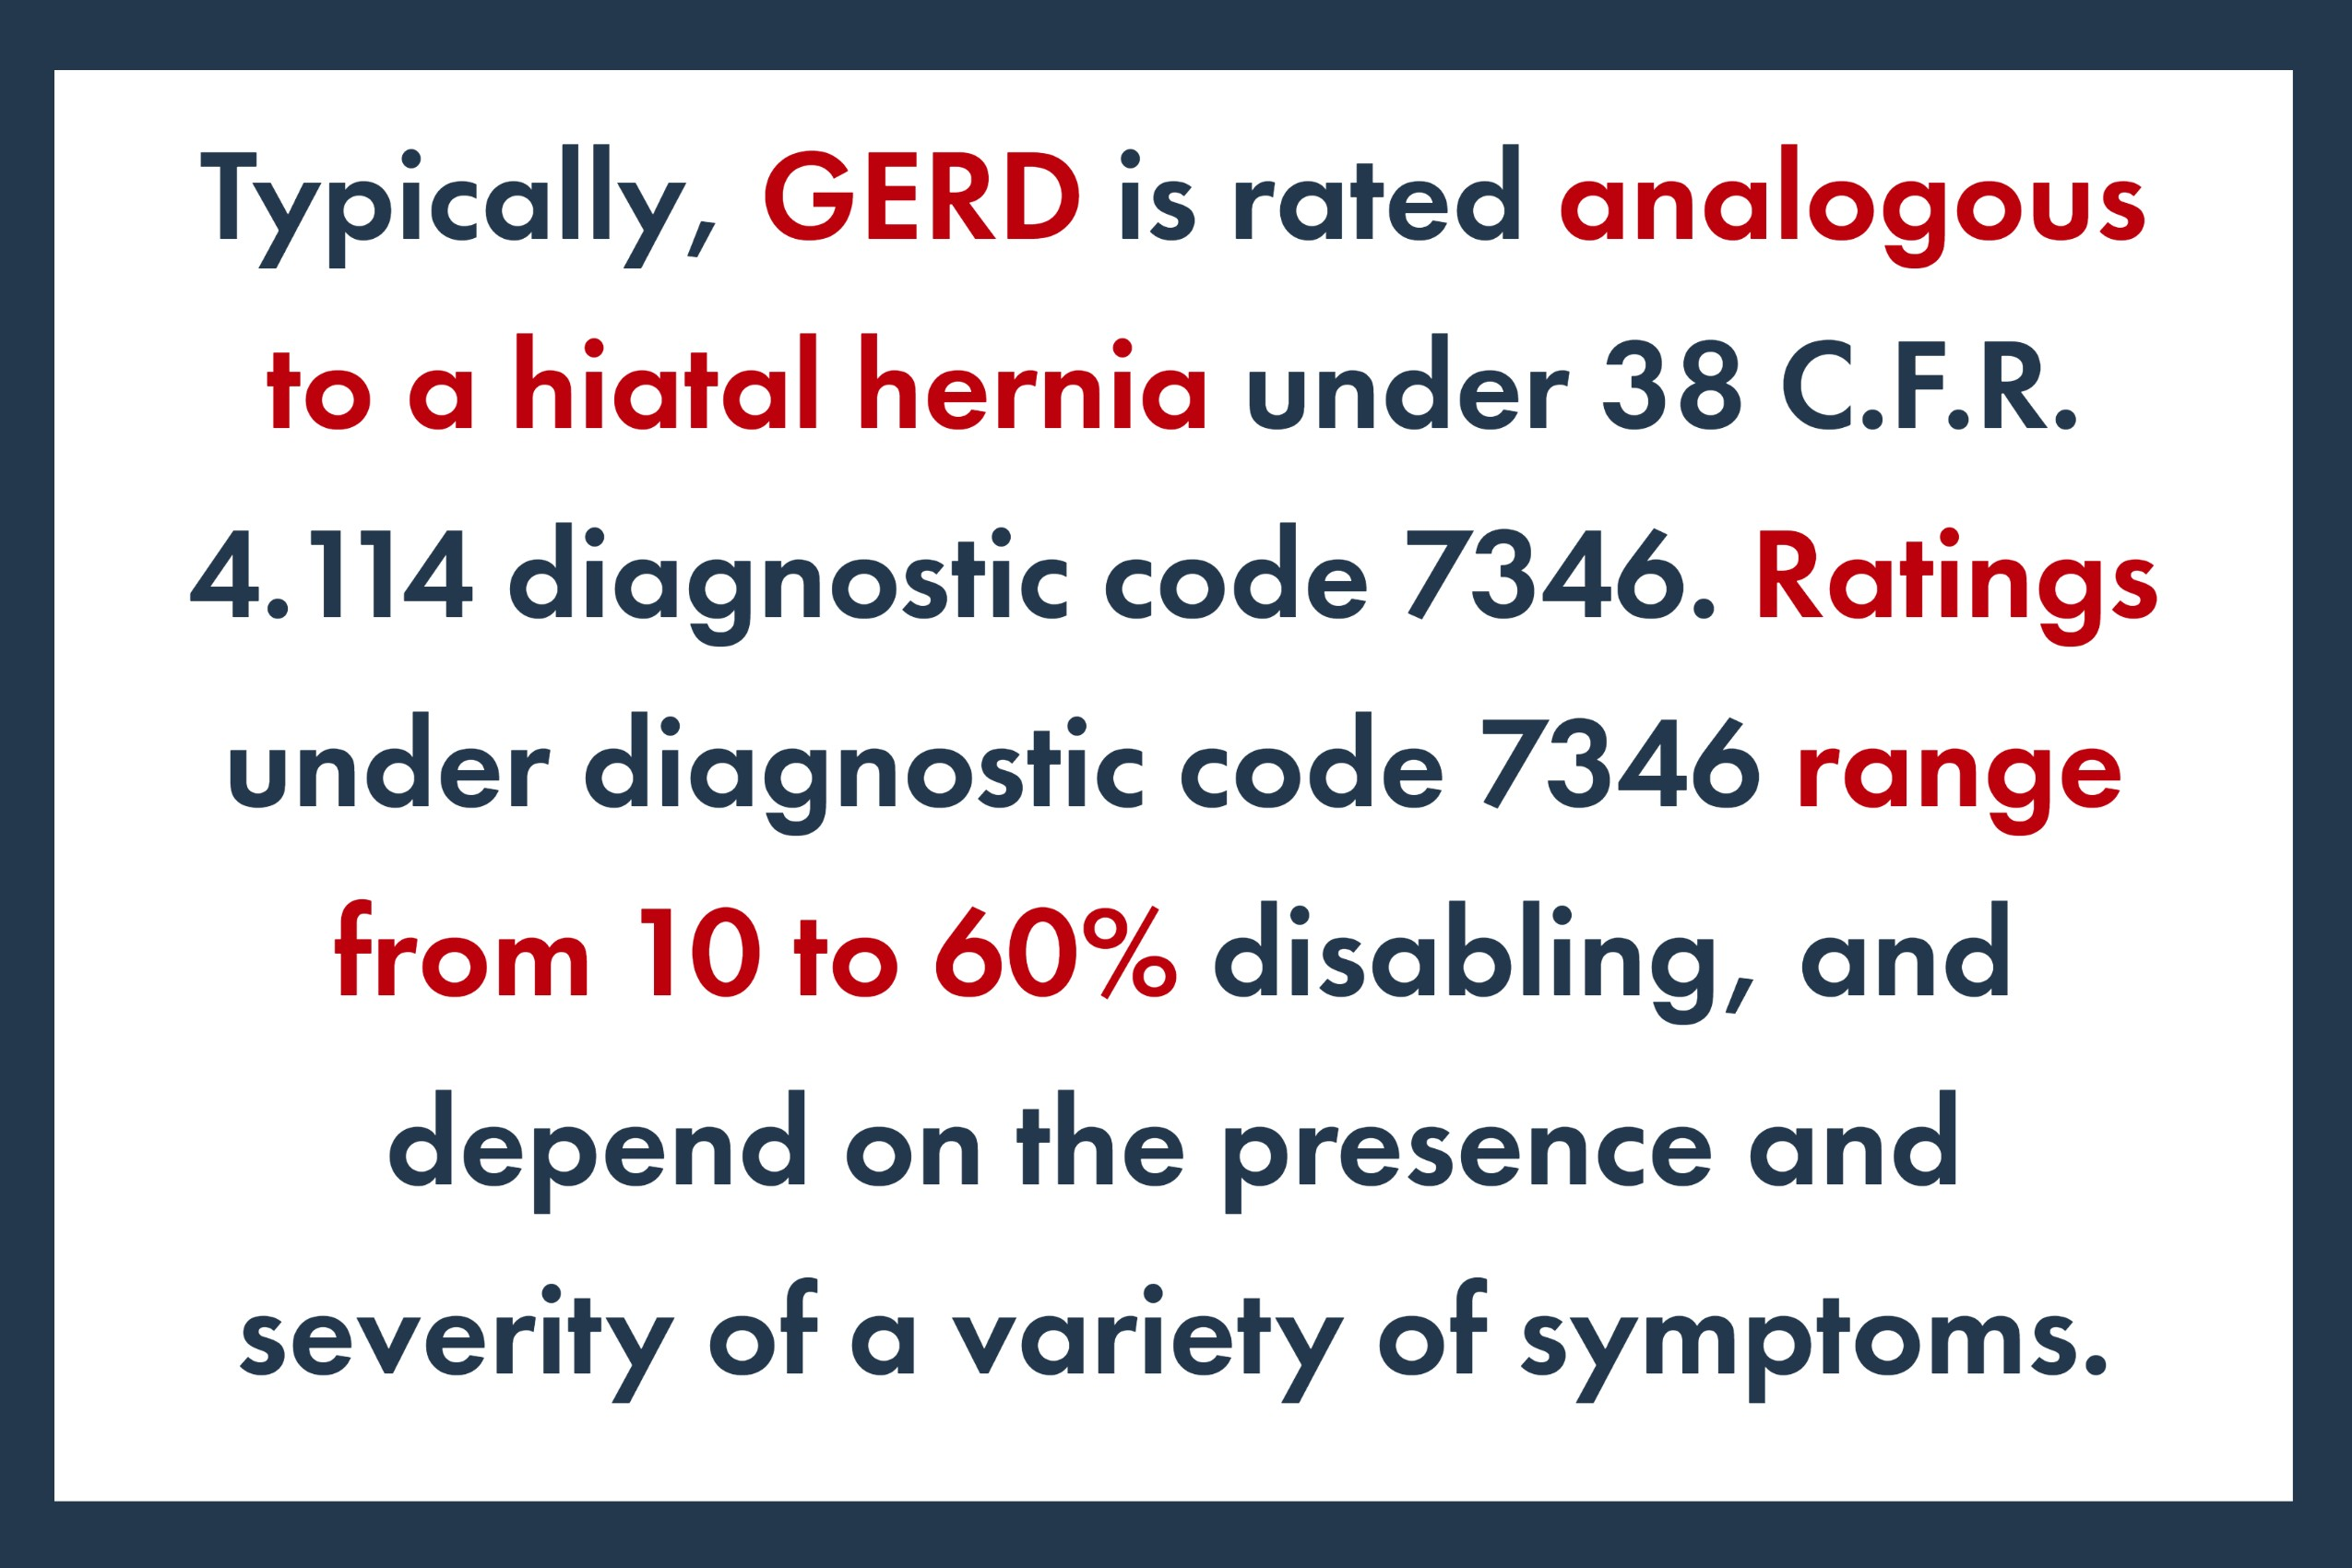 Typically, GERD is rated analogous to a hiatal hernia under 38 C.F.R. 4.114 diagnostic code 7346. Ratings under diagnostic code 7346 range from 10 to 60% disabling, and depend on the presence and severity of a variety of symptoms.